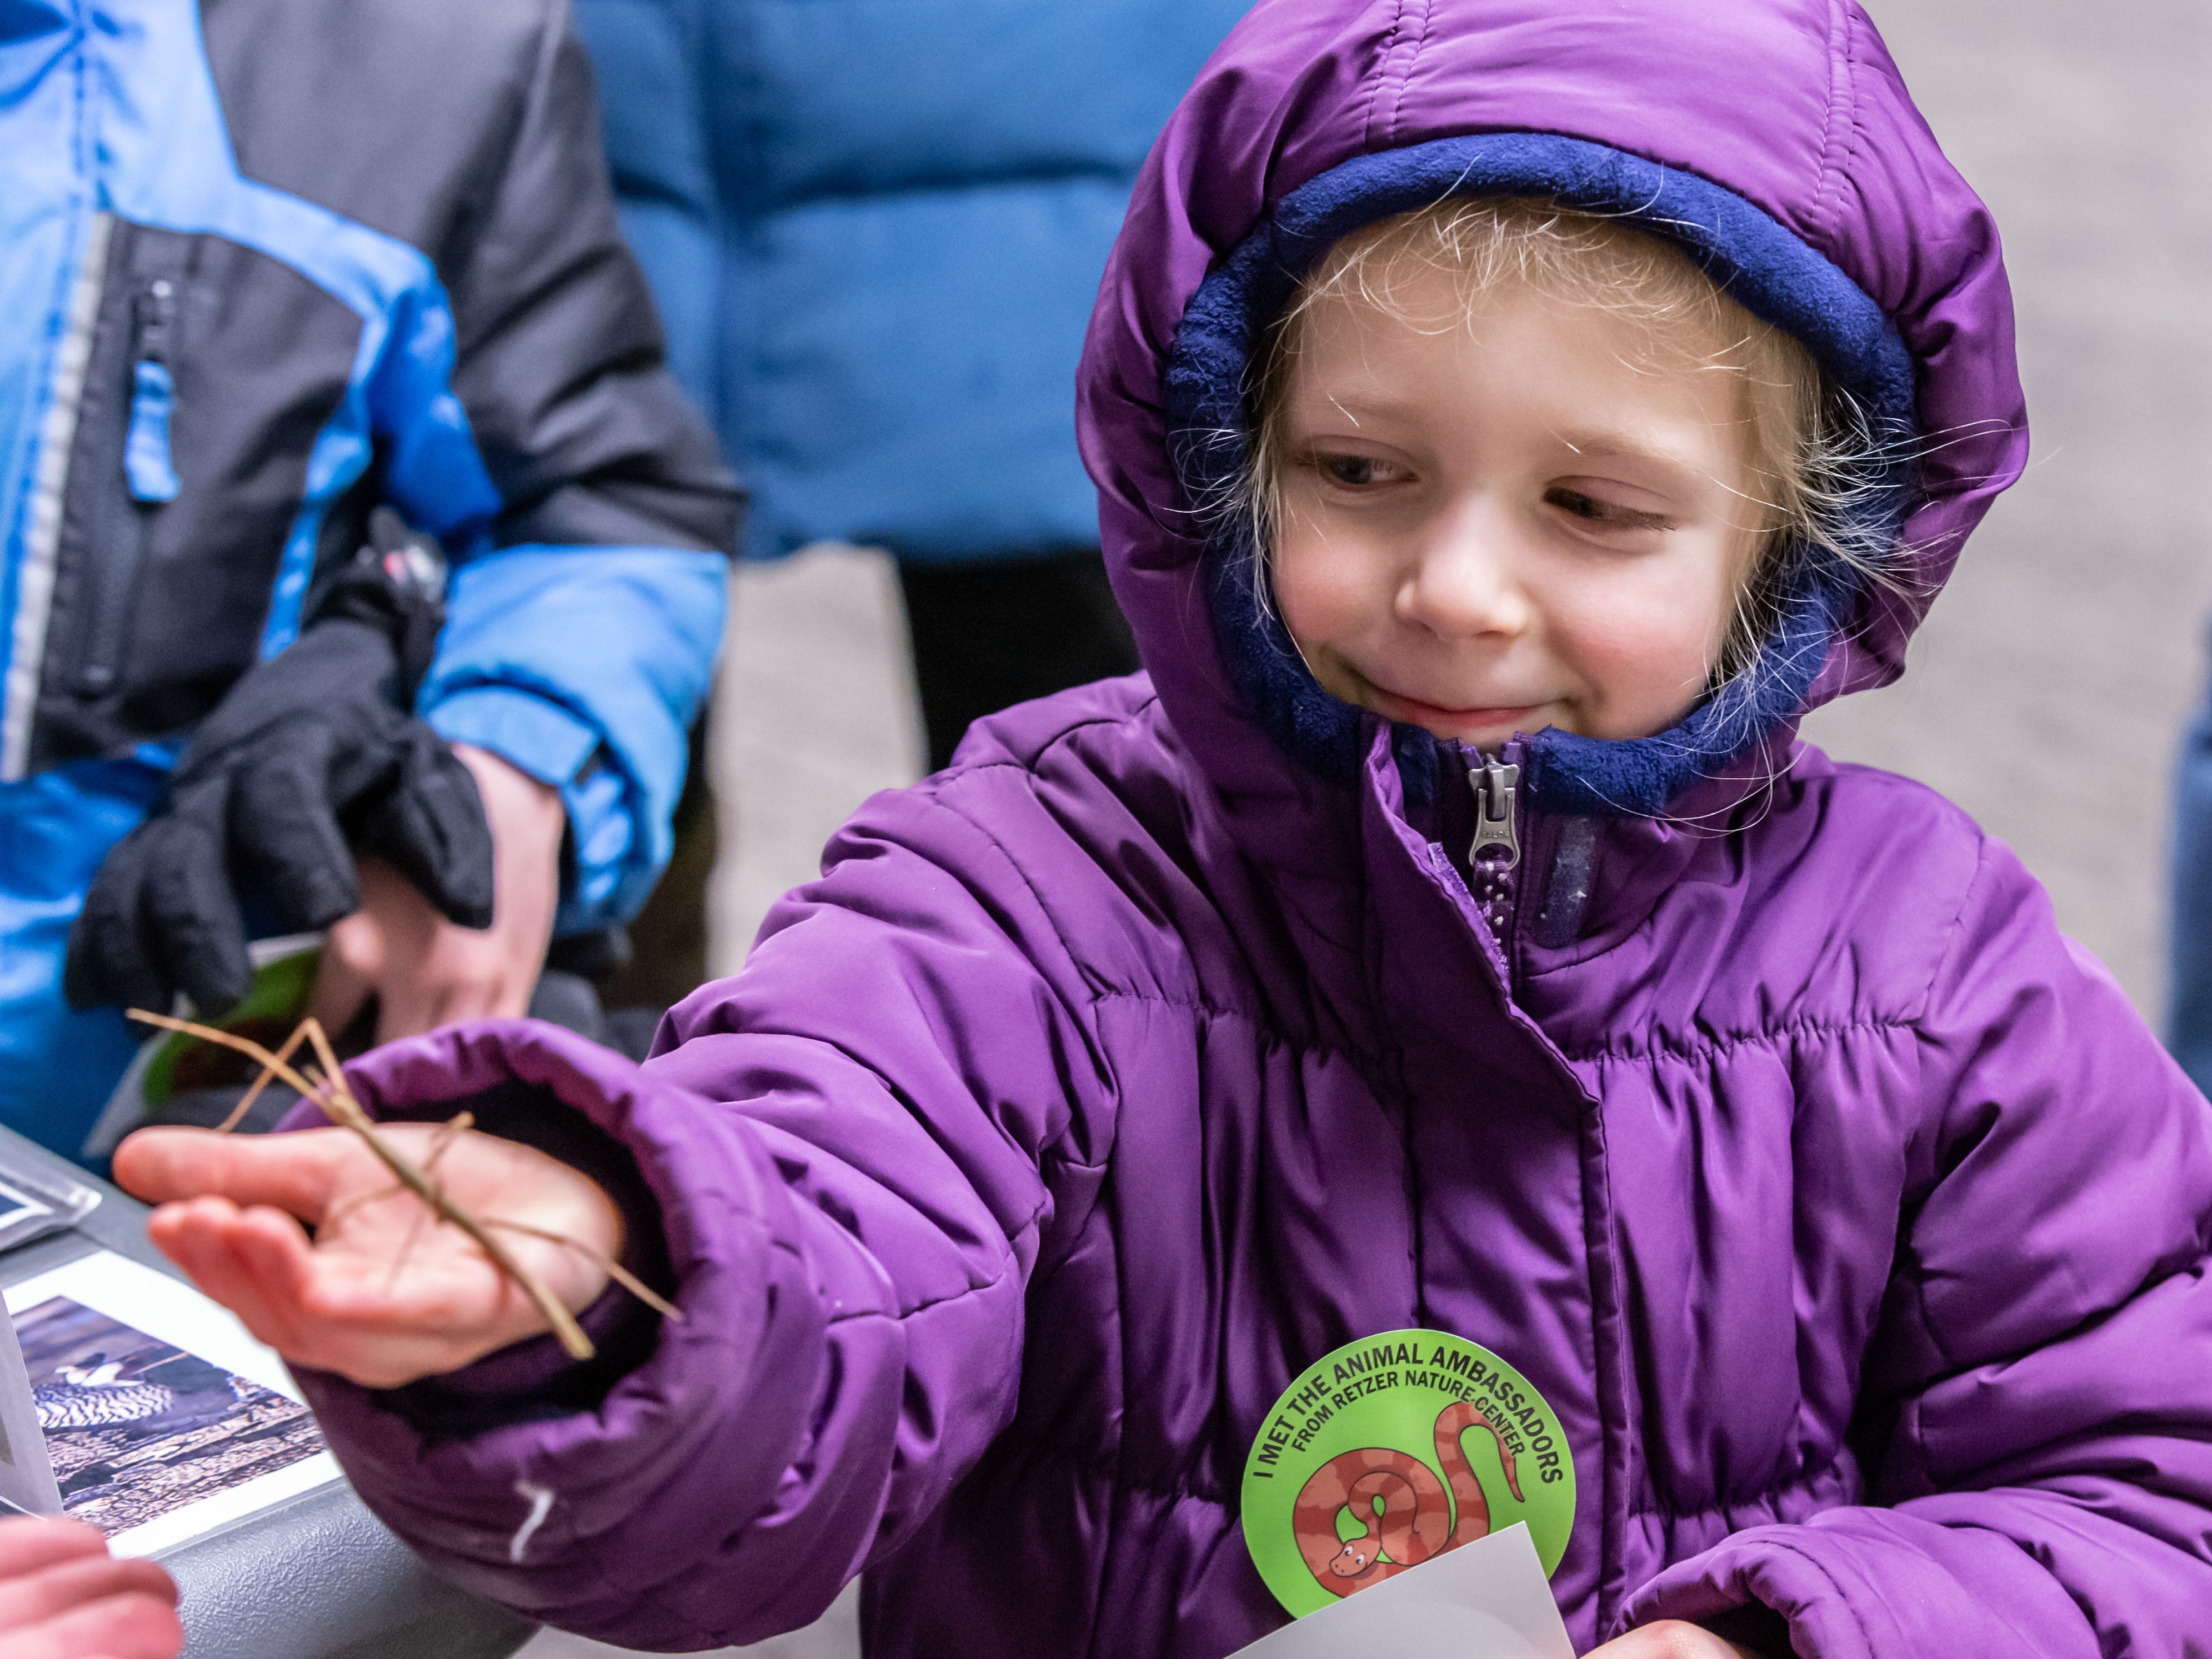 Five-year-old Ellie Fenelon of Brookfield holds a live walking stick during Retzer Nature Center's Wild Winter Night on Saturday, Feb. 16, 2019. The event featured candlelit hikes, snowshoeing, a campfire, educational programs and more.